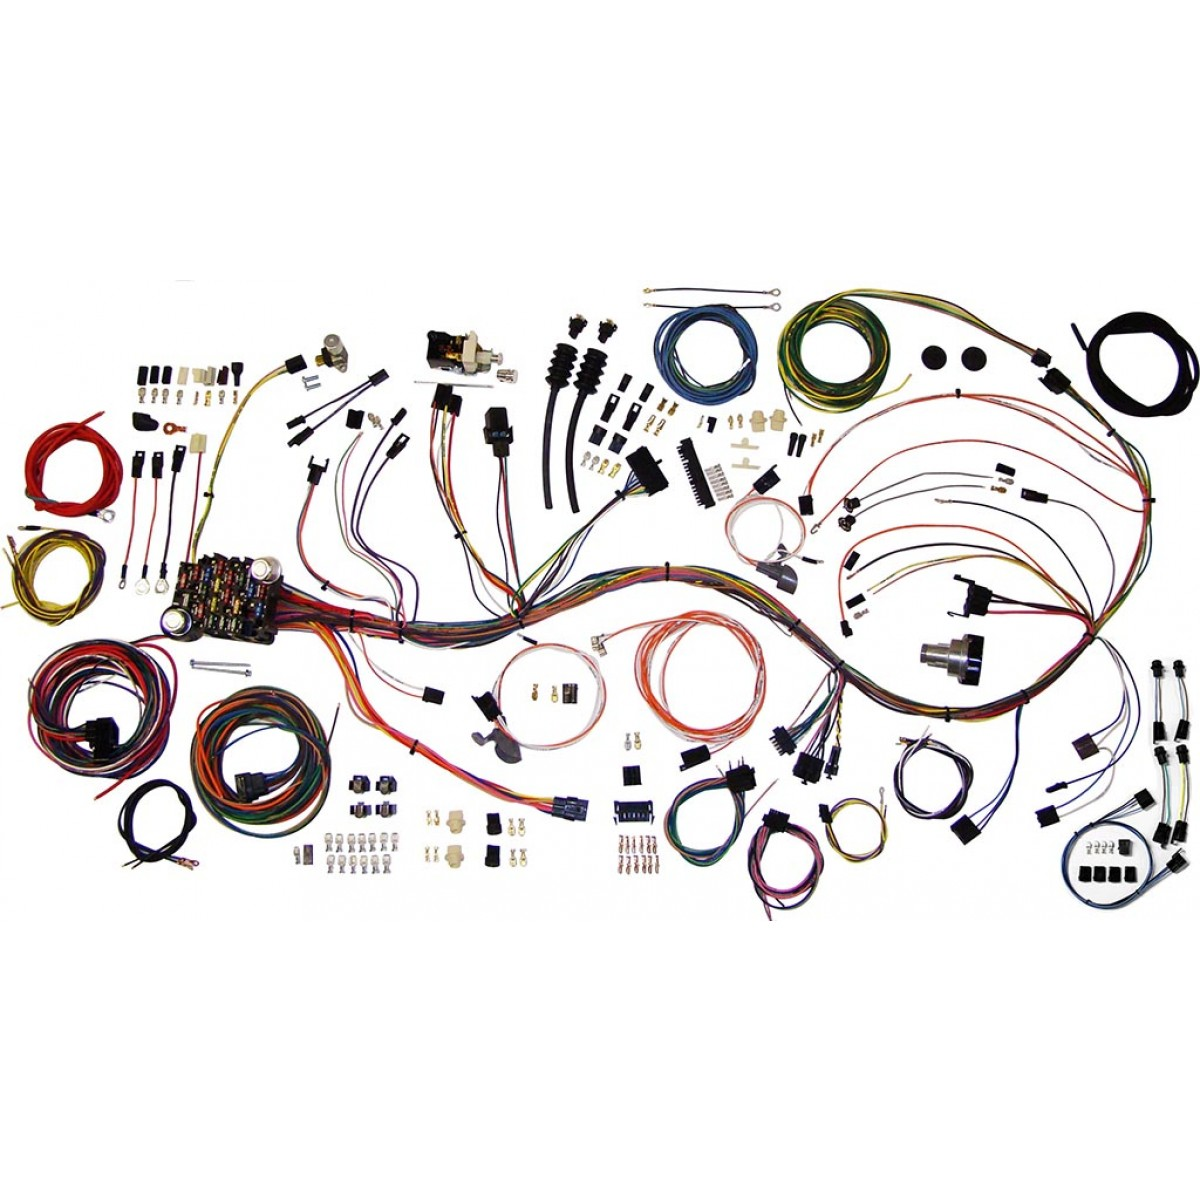 hight resolution of complete wiring harness kit 1967 1968 chevy truck c10 part 510333